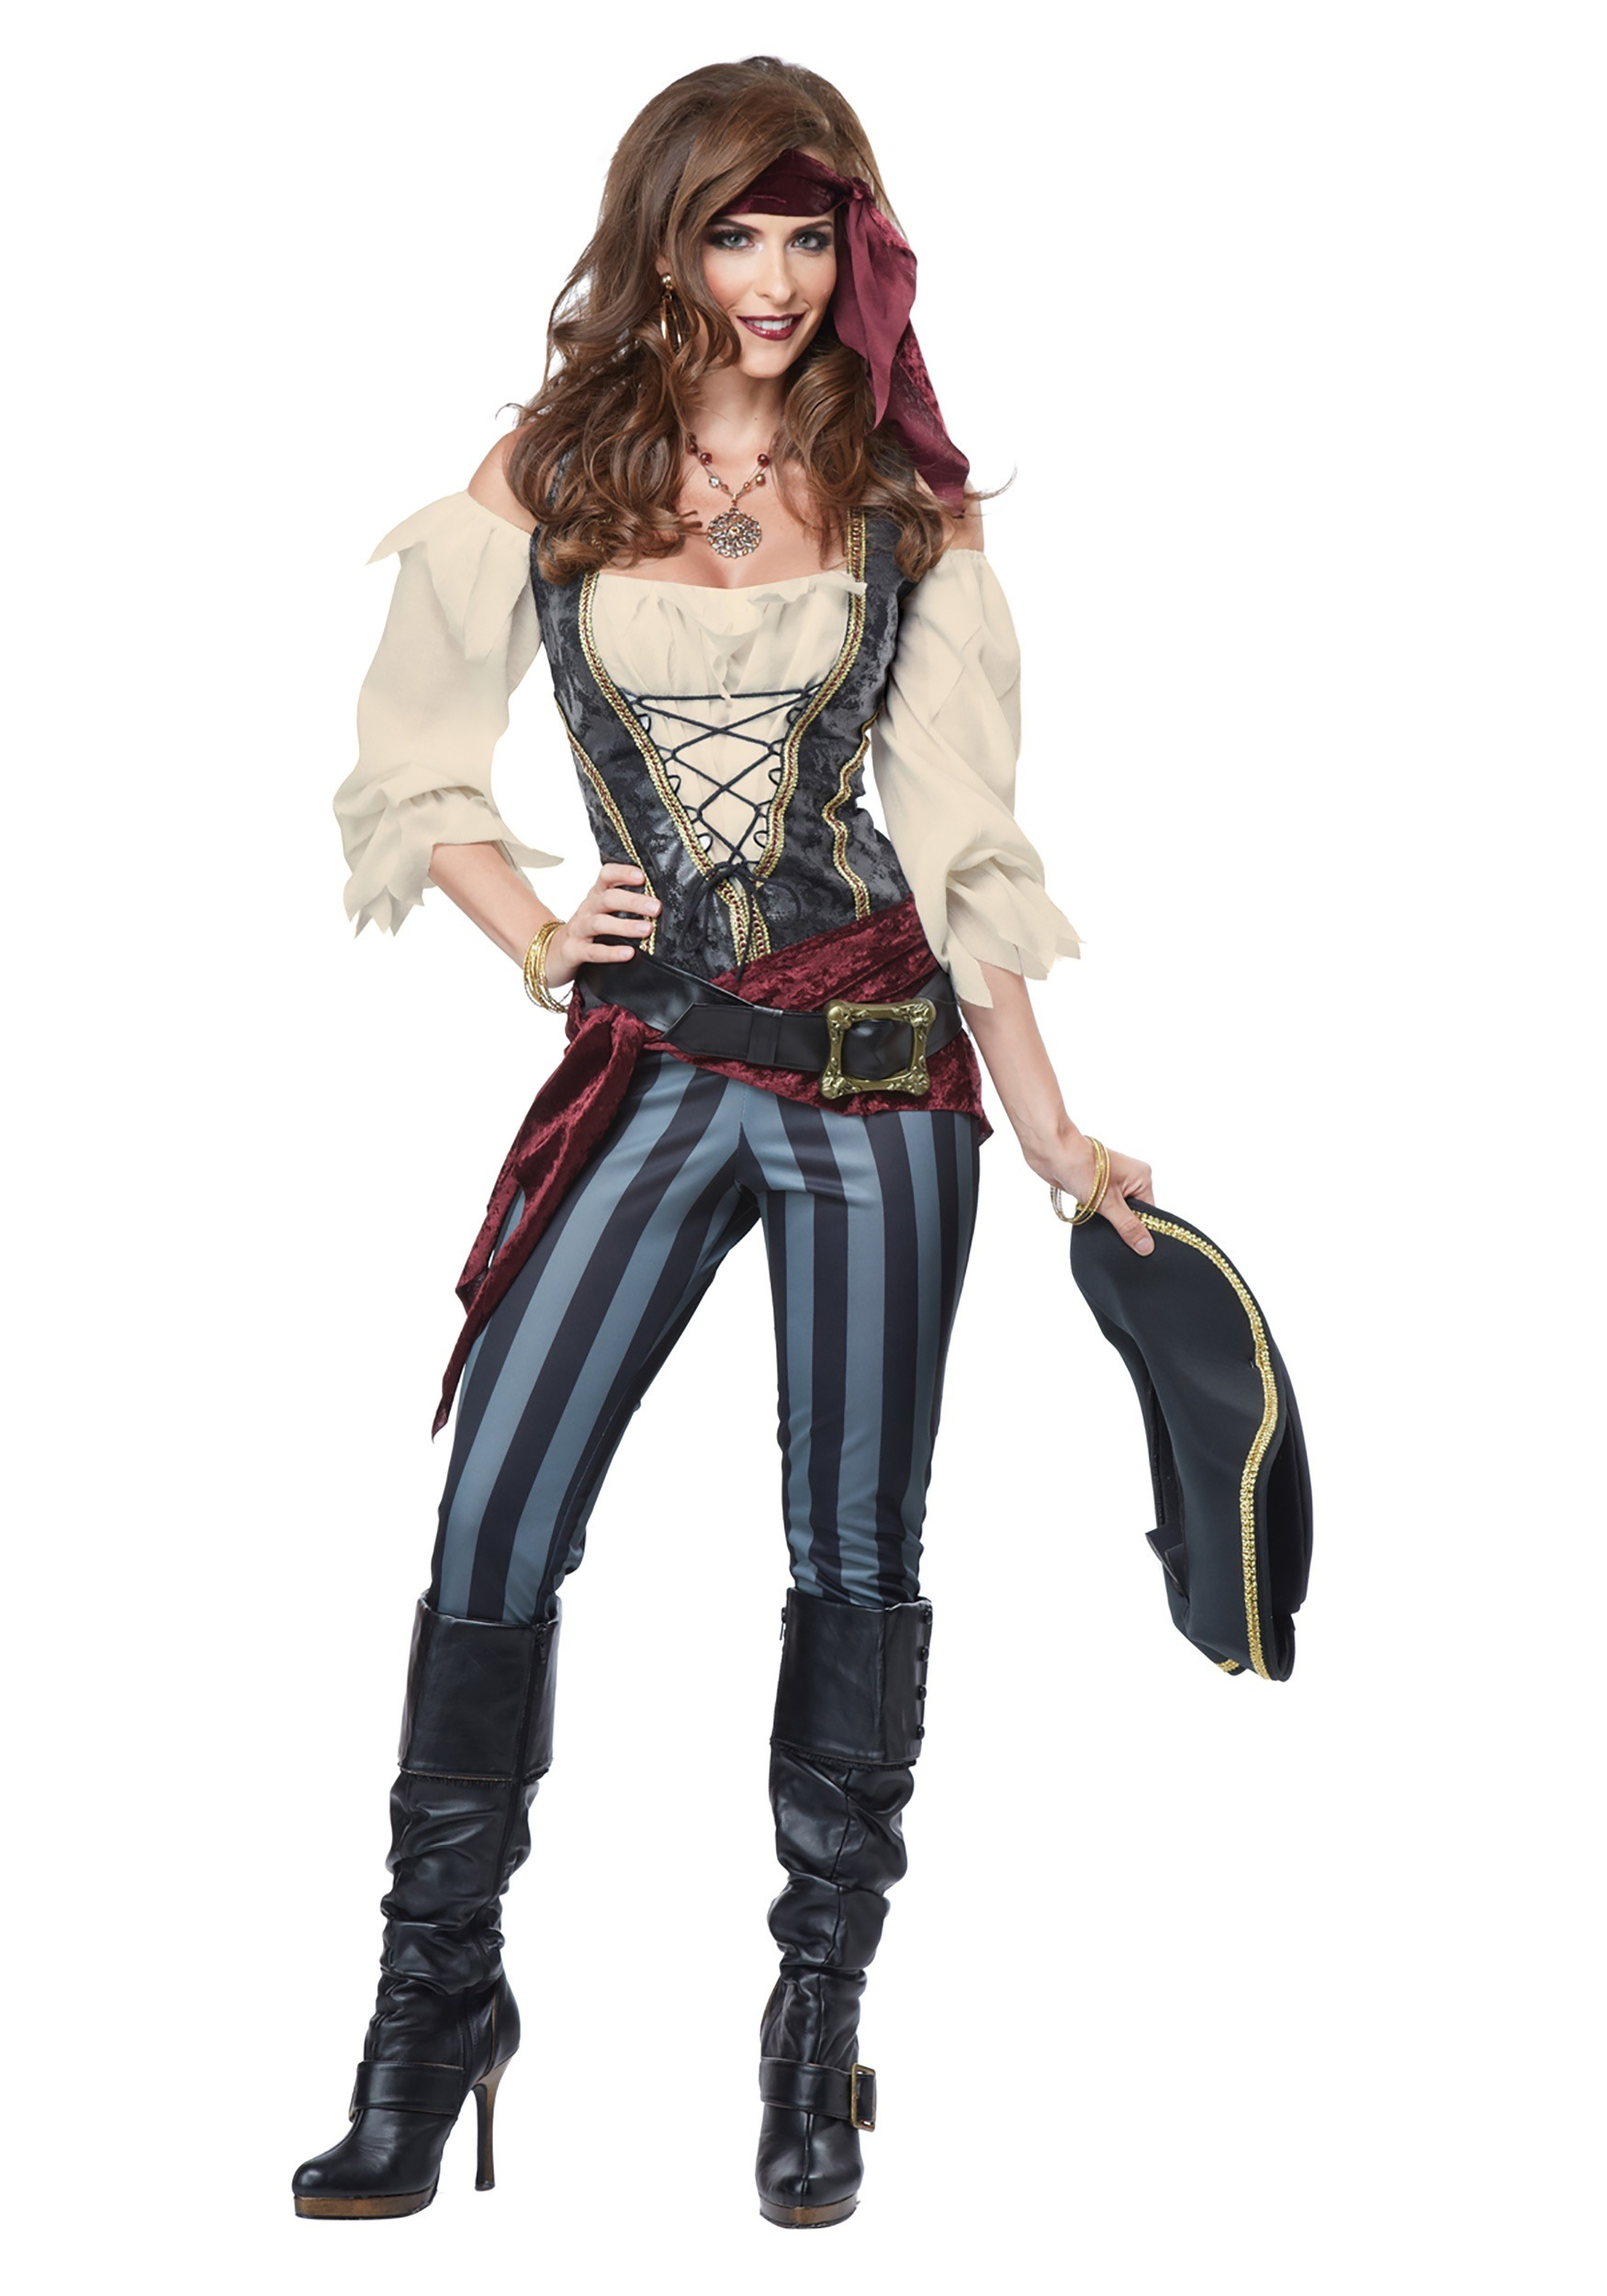 Female Pirate Clothing Historical | Toffee Art